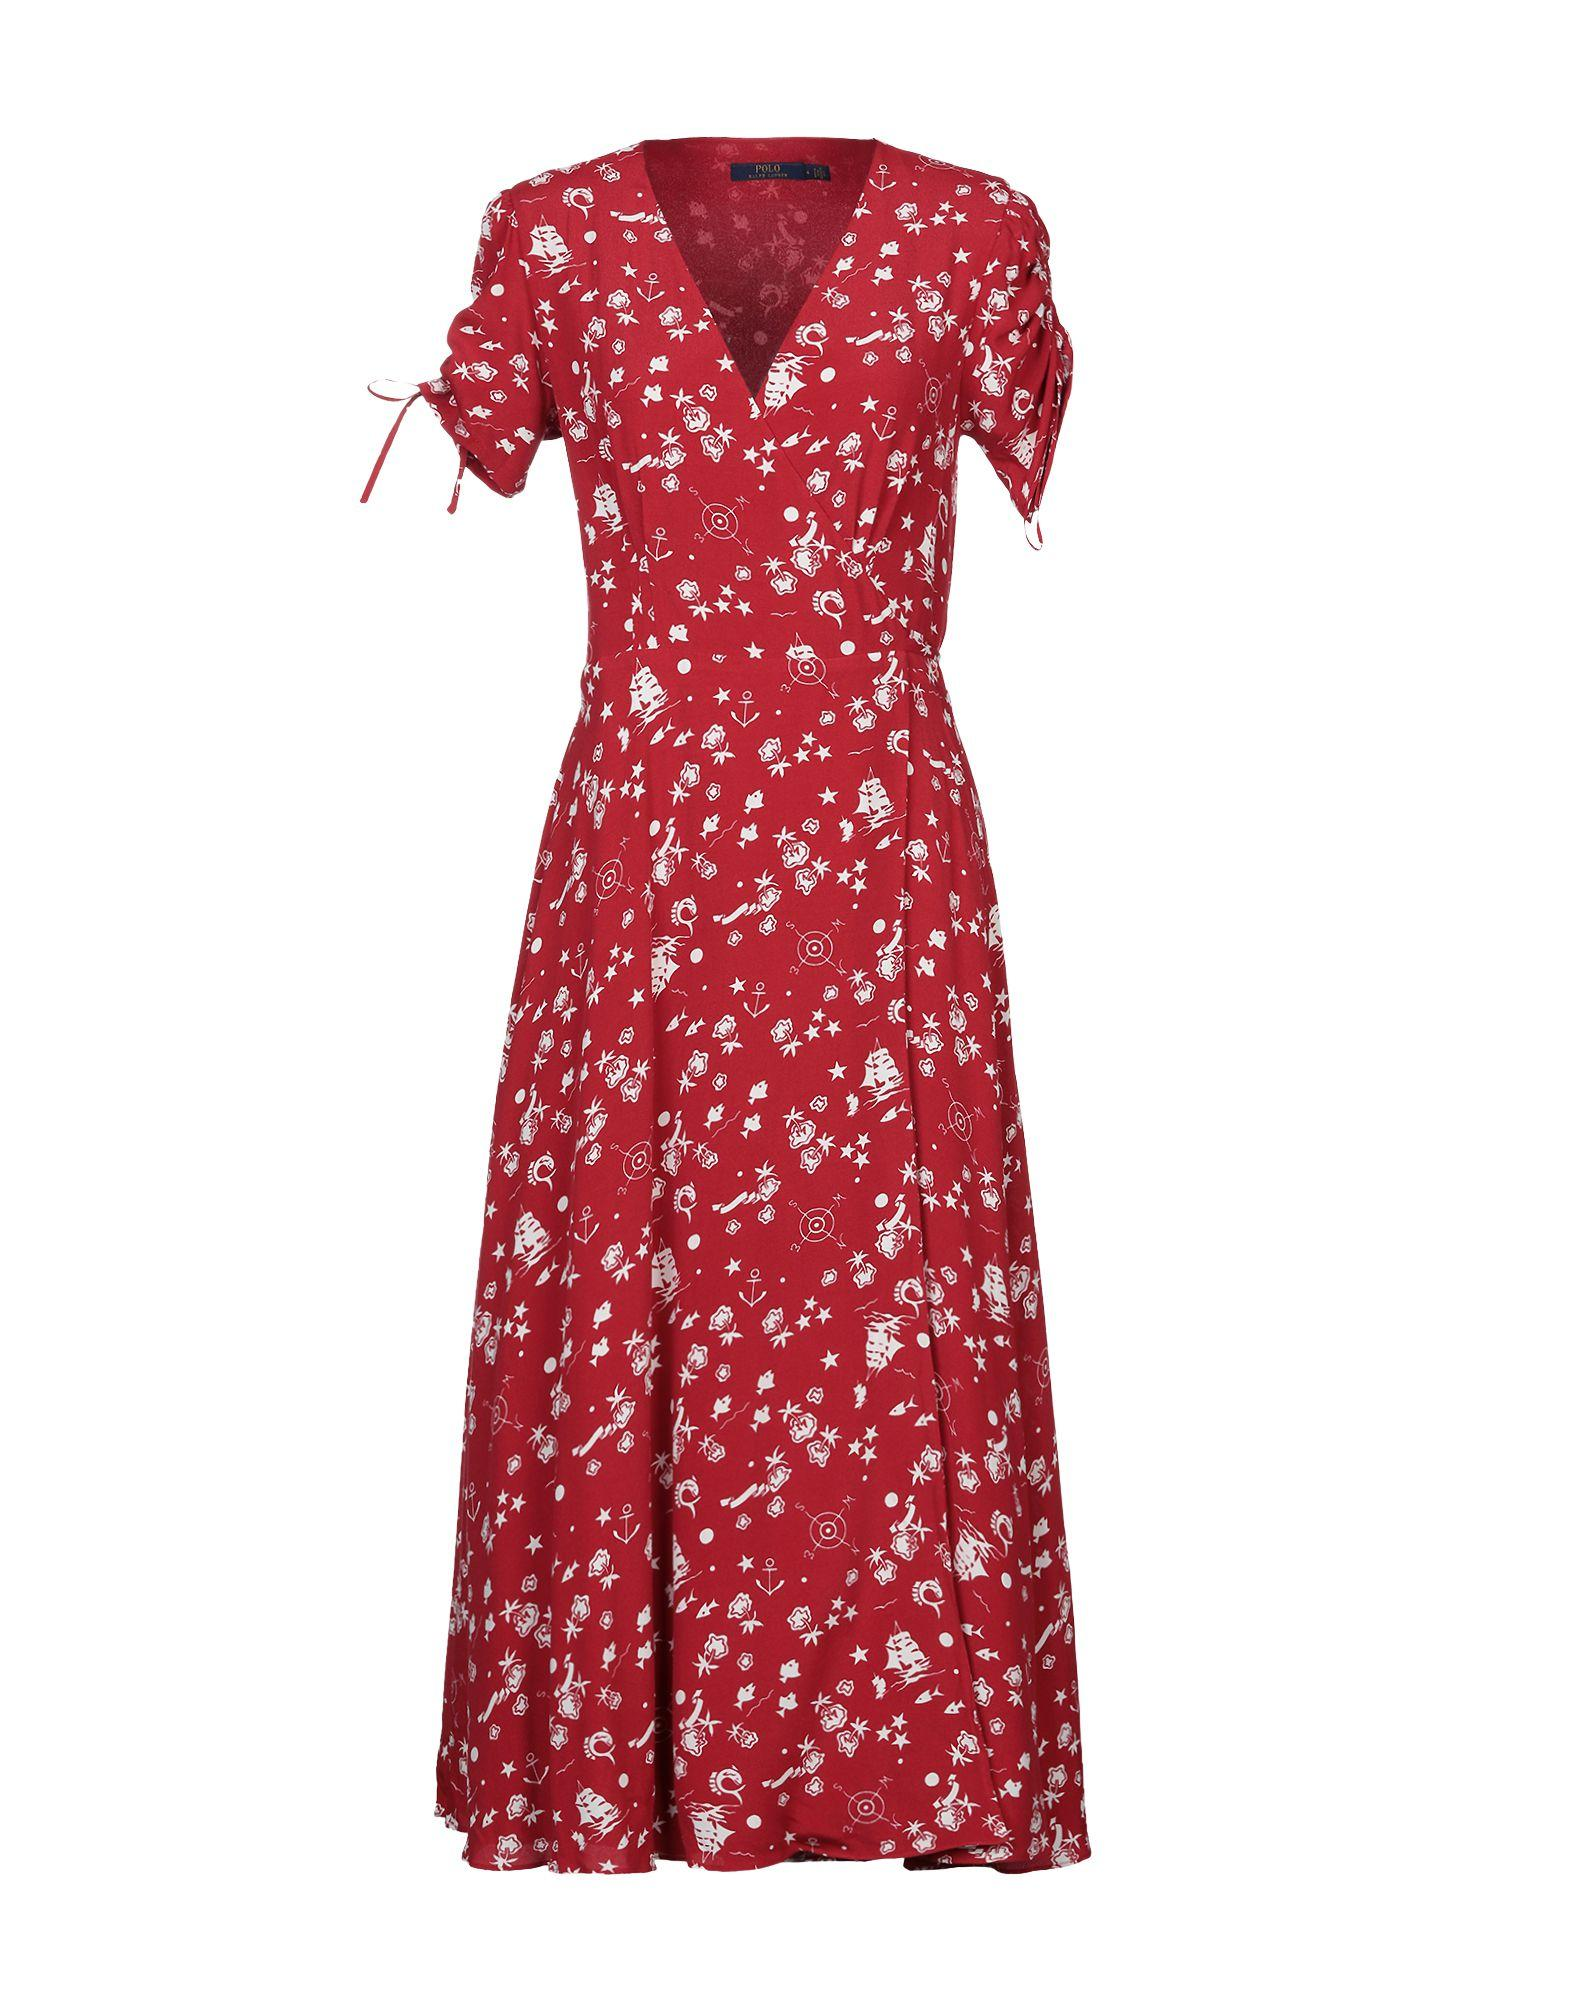 3ca3b2c7bfb Polo Ralph Lauren Print Crepe Wrap Dress in Red - Save 57% - Lyst